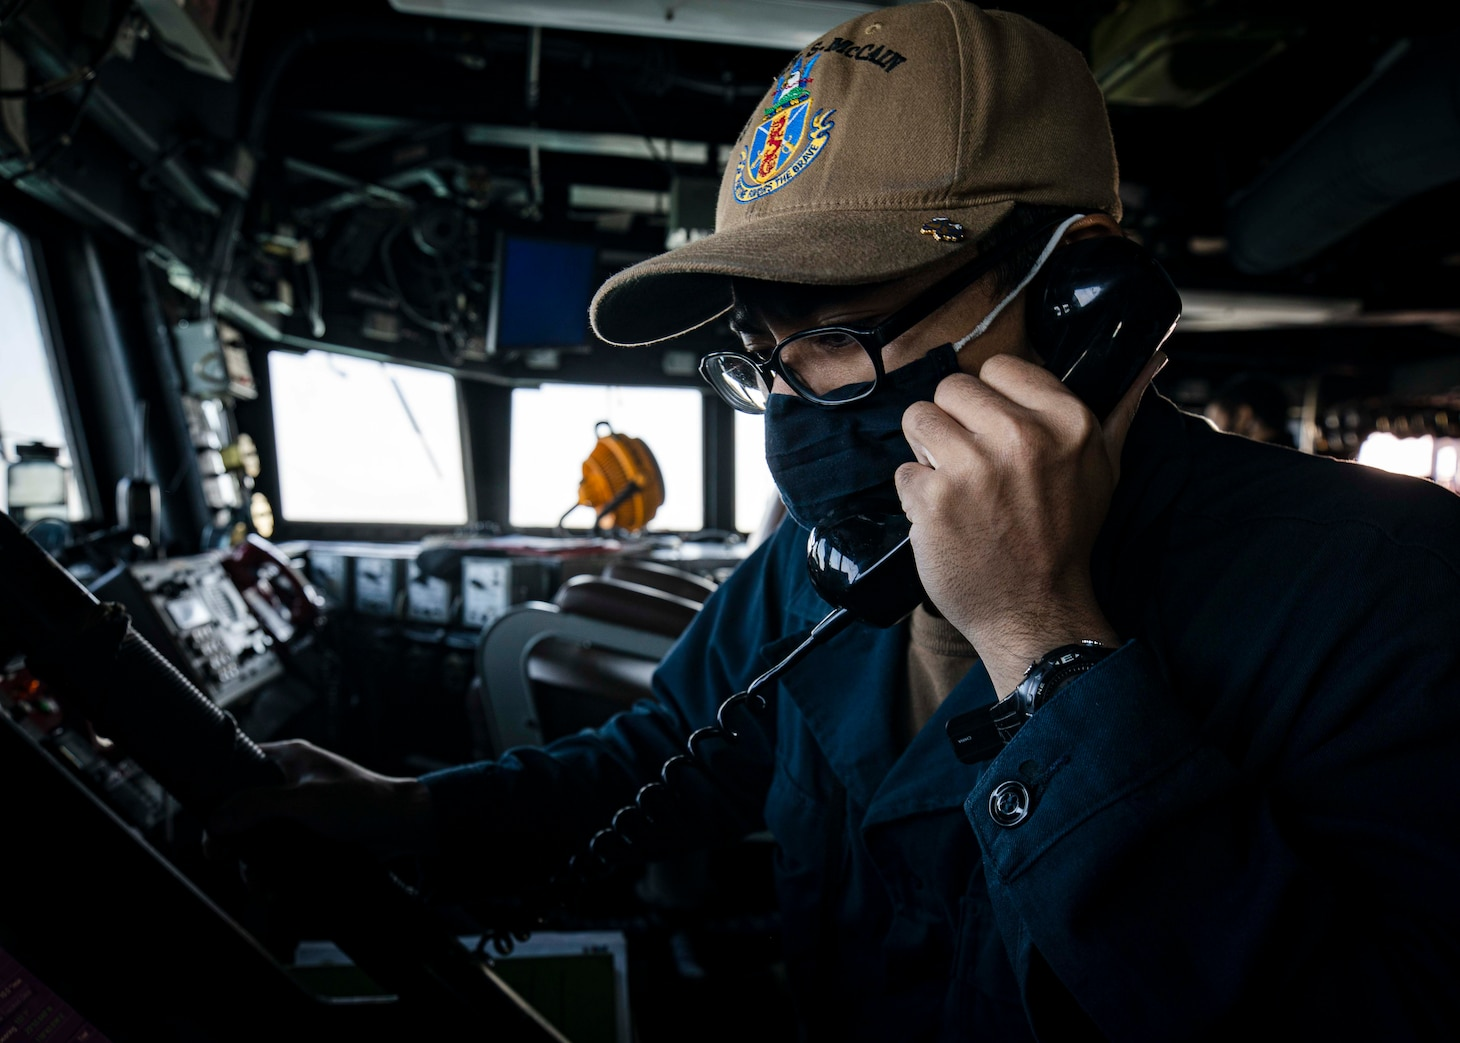 TAIWAN STRAIT (Dec. 30, 2020) Ensign Ryan Richards completes a maneuvering board on the bridge as guided-missile destroyer USS Curtis Wilbur (DDG 54) conducts routine operations. Curtis Wilbur is forward-deployed to the U.S. 7th Fleet area of operations in support of a free and open Indo-Pacific. Sea control is foundational for all other naval missions that support the Joint Force, including power projection. (U.S. Navy Photo by Mass Communication Specialist 2nd Class Benjamin T. Liston)